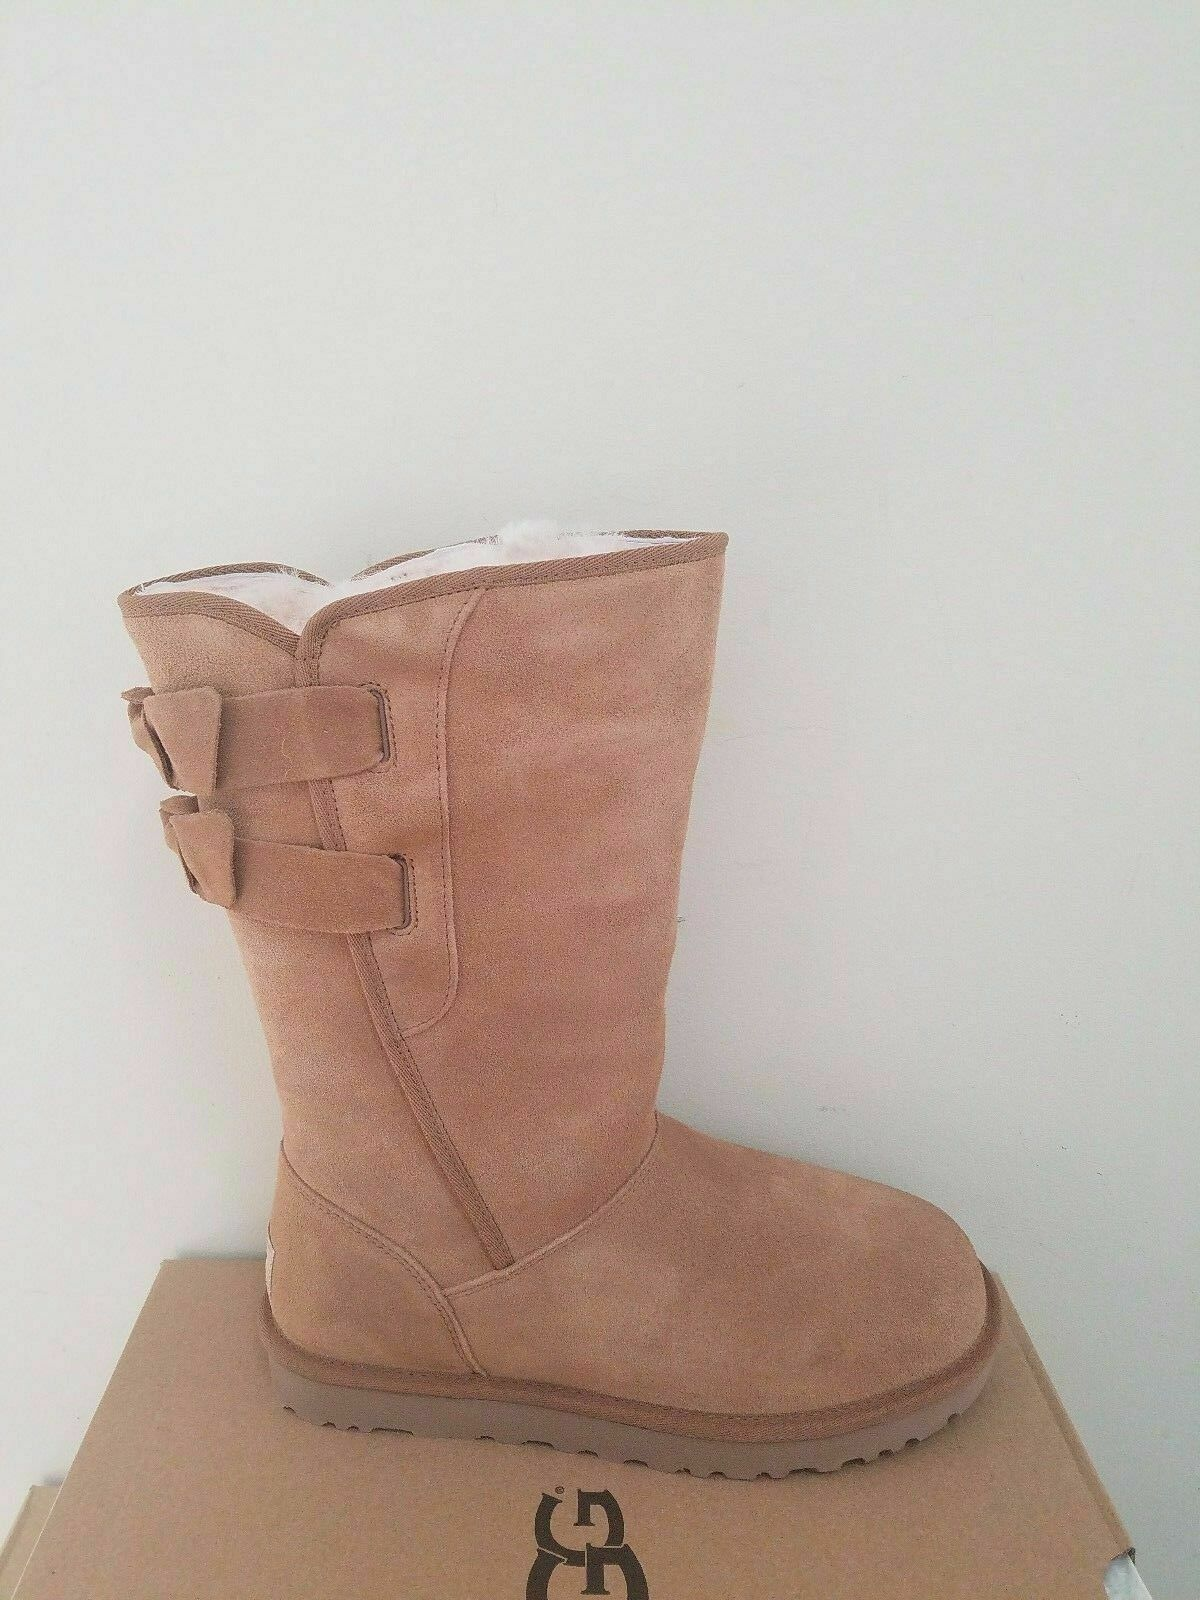 3686c6ae0d5 UGG Australia Women's Allegra Bow BOOTS Size 5